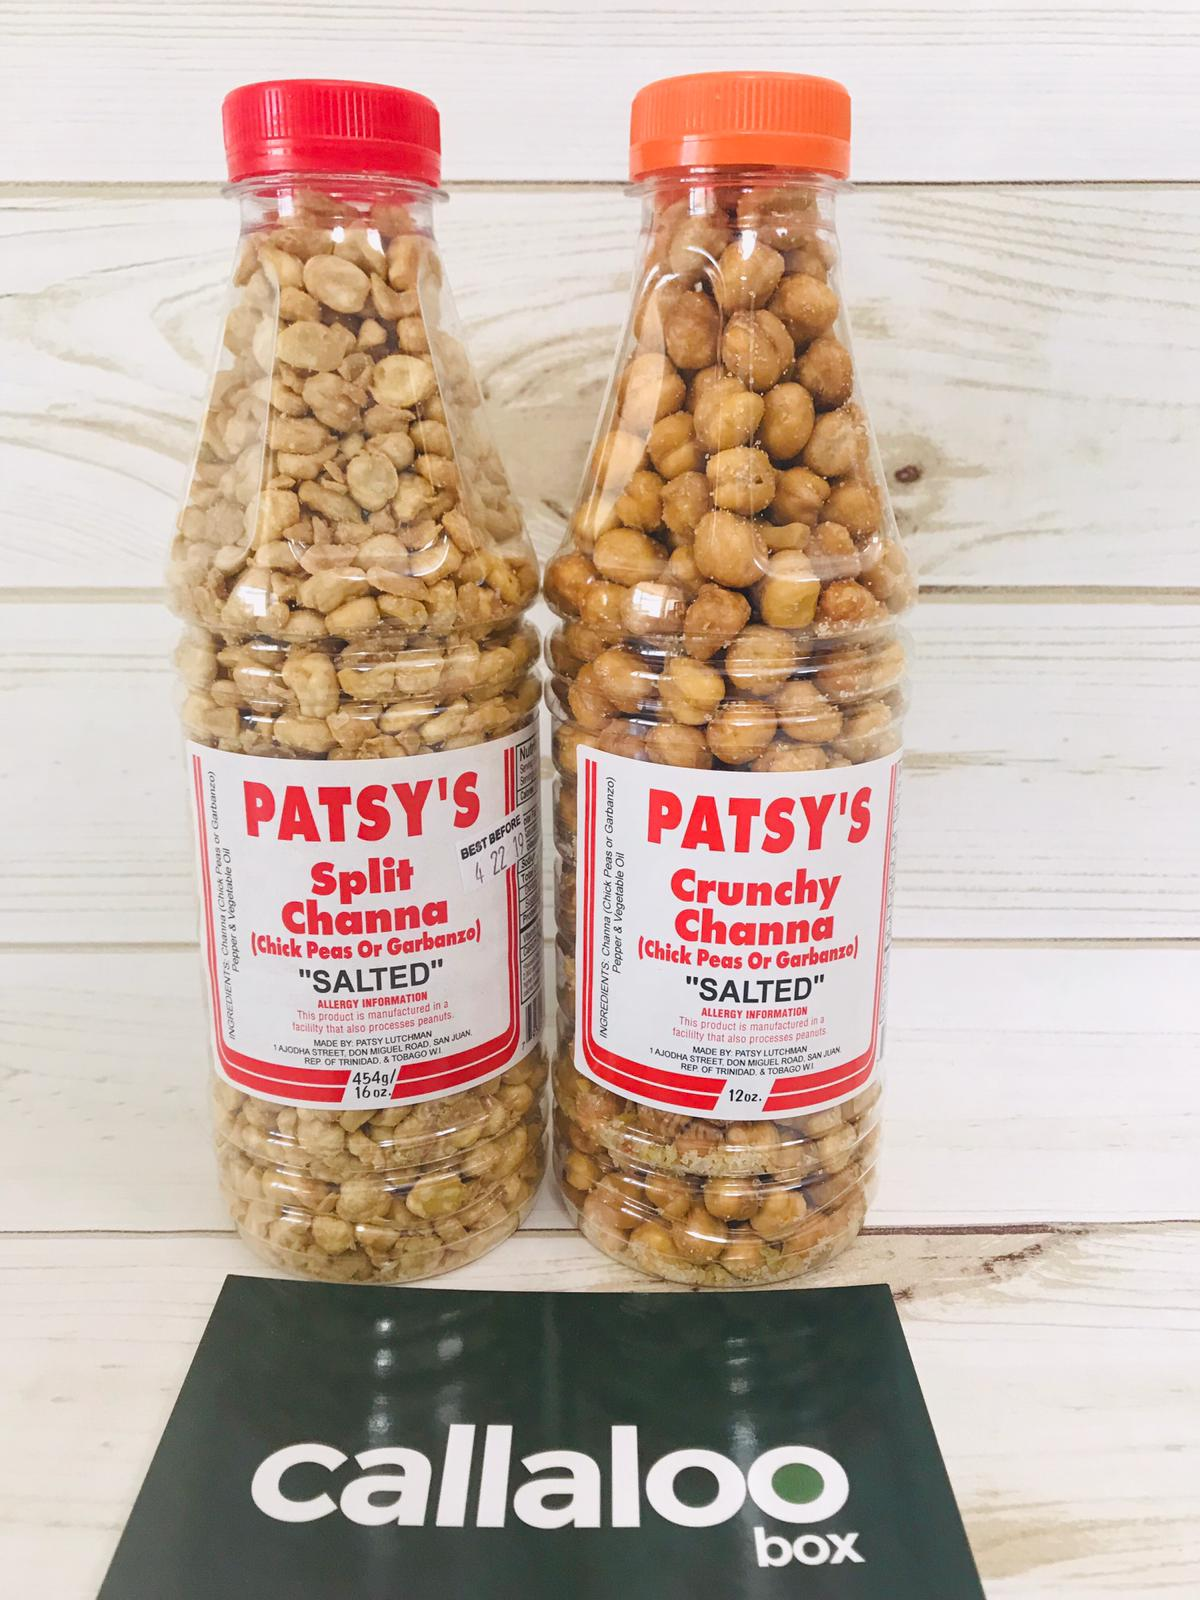 Patsy's Channa (Chick Peas) Sampler -16oz - Pack of 2